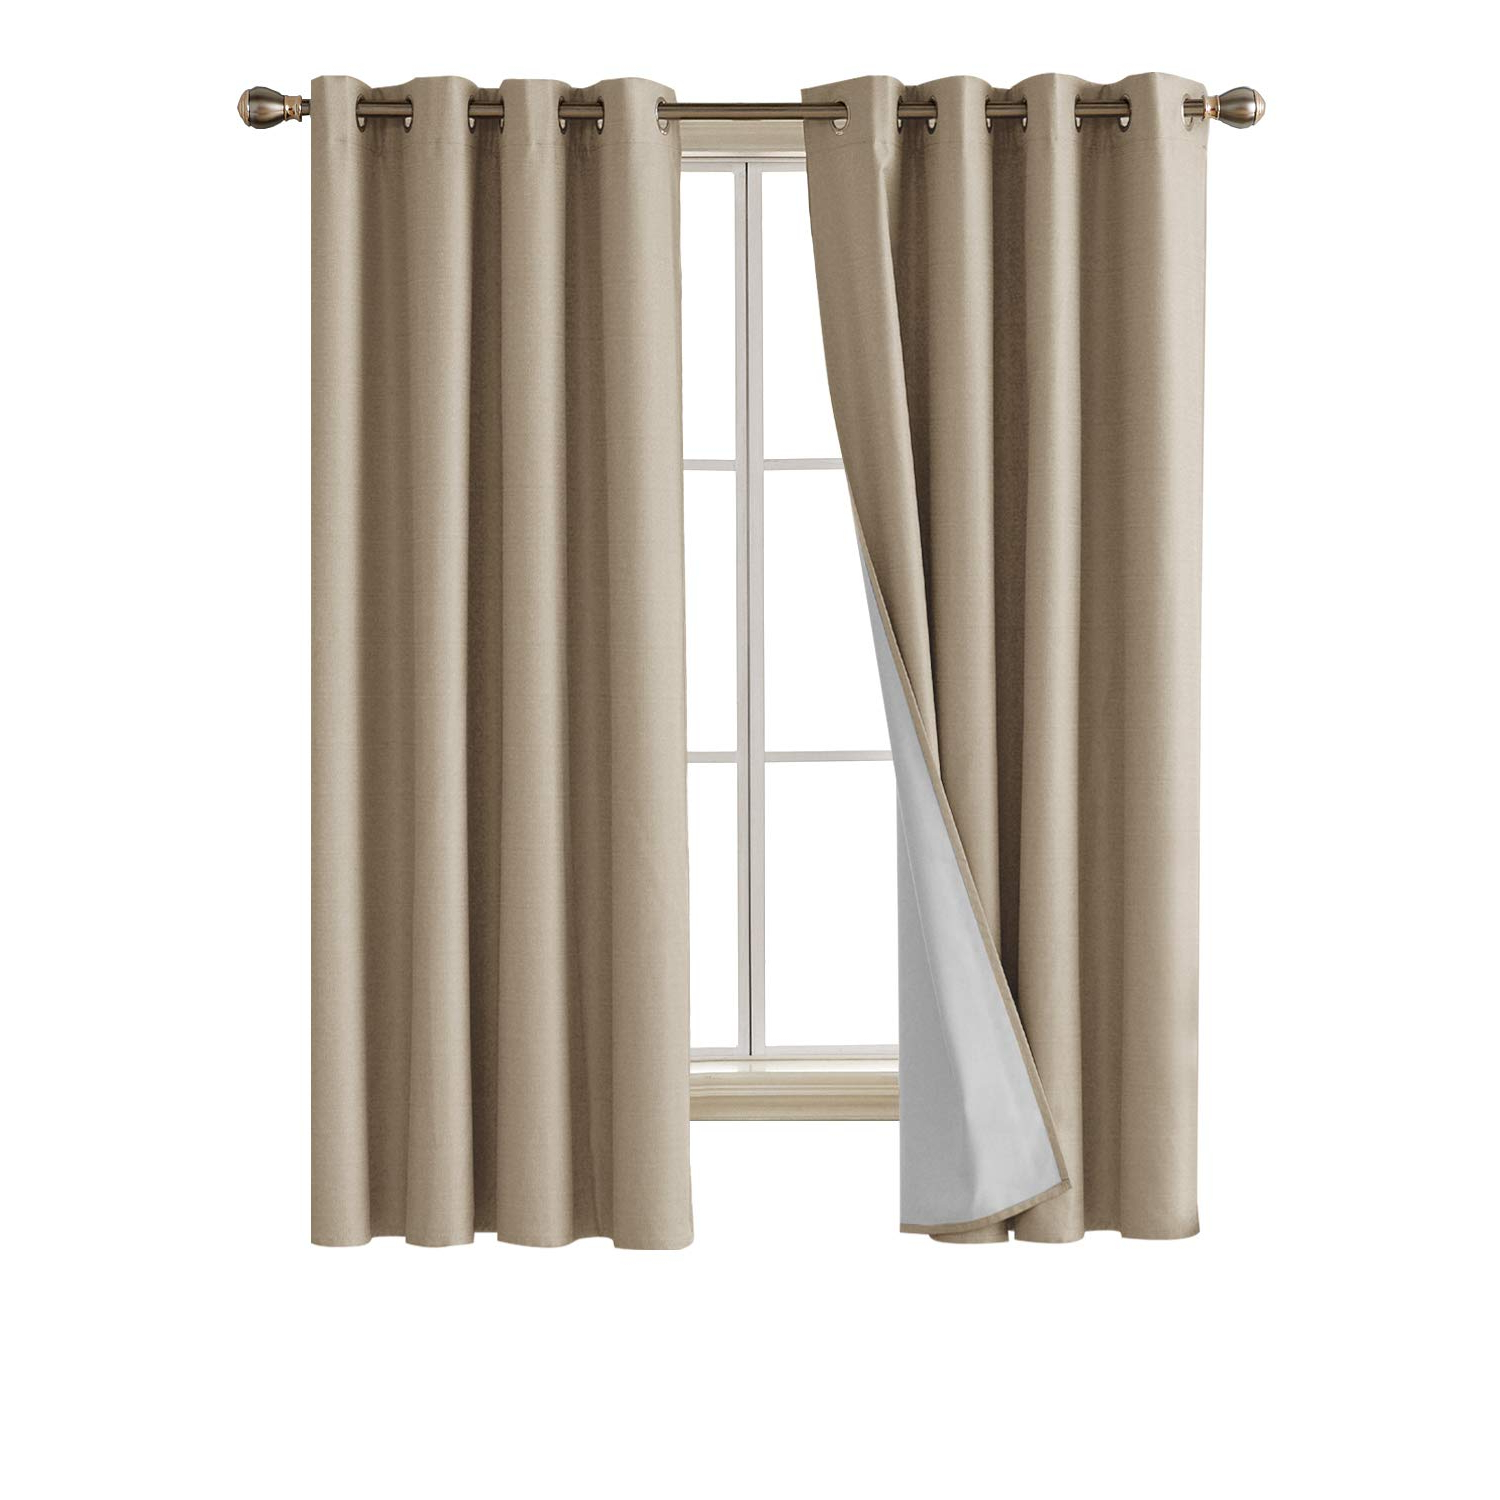 Newest Deconovo Faux Linen Blackout Curtains With 3 Pass Energy Efficient Thermal Insulated Coating Room Darkening Curtains Drapes For Dining Room 52 X 72 With Faux Linen Blackout Curtains (View 5 of 20)